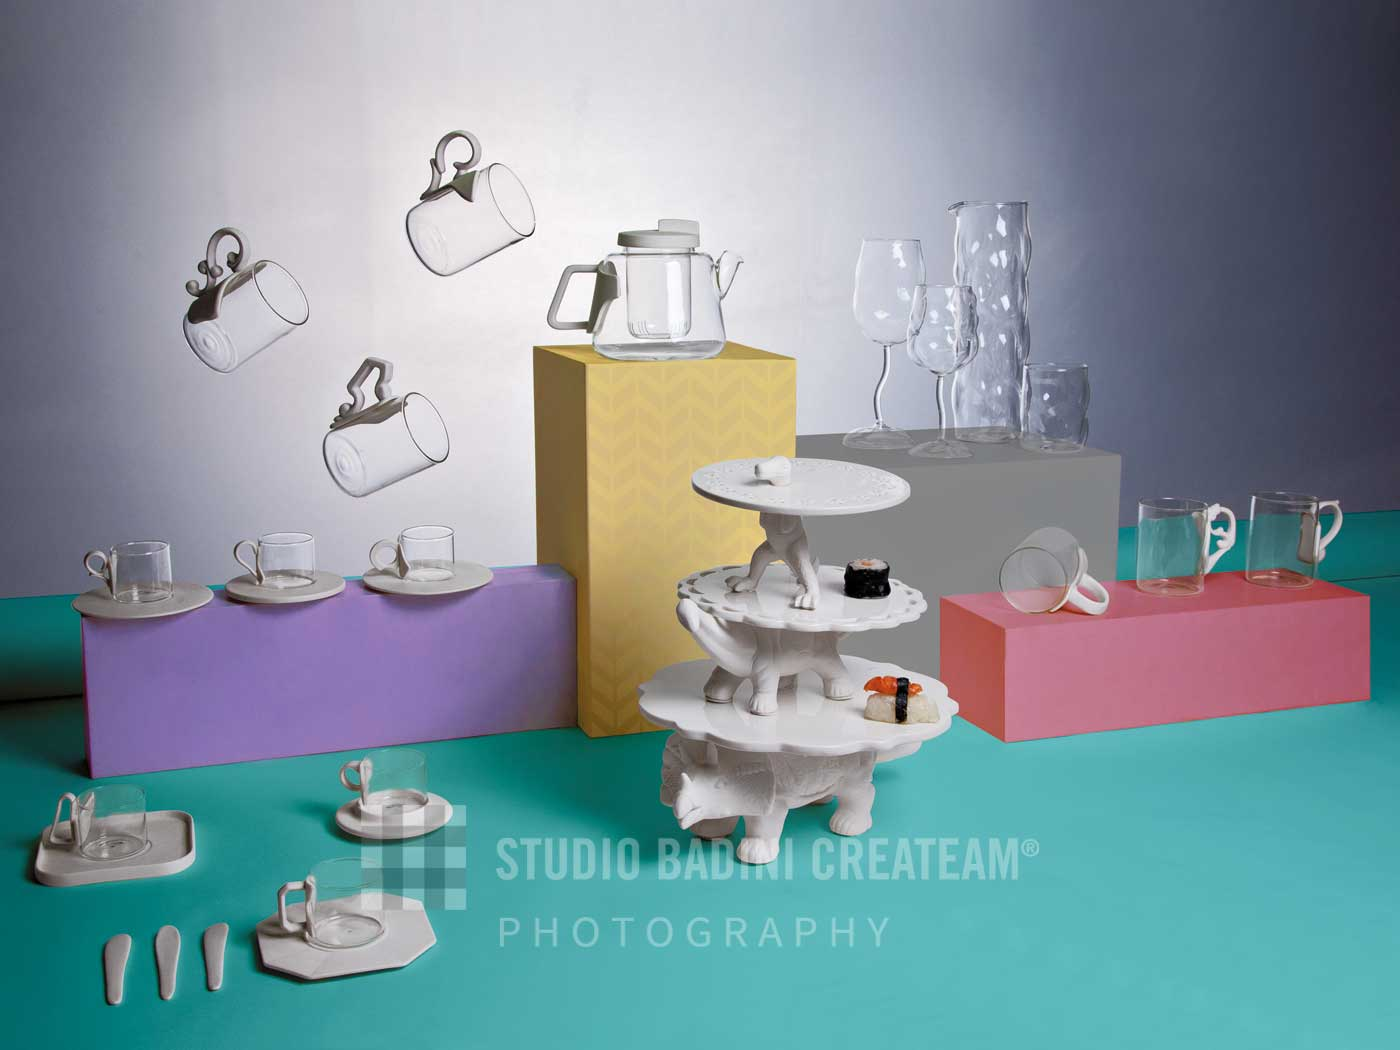 Badini Creative Studio - fotografia - seletti - glass from sonny